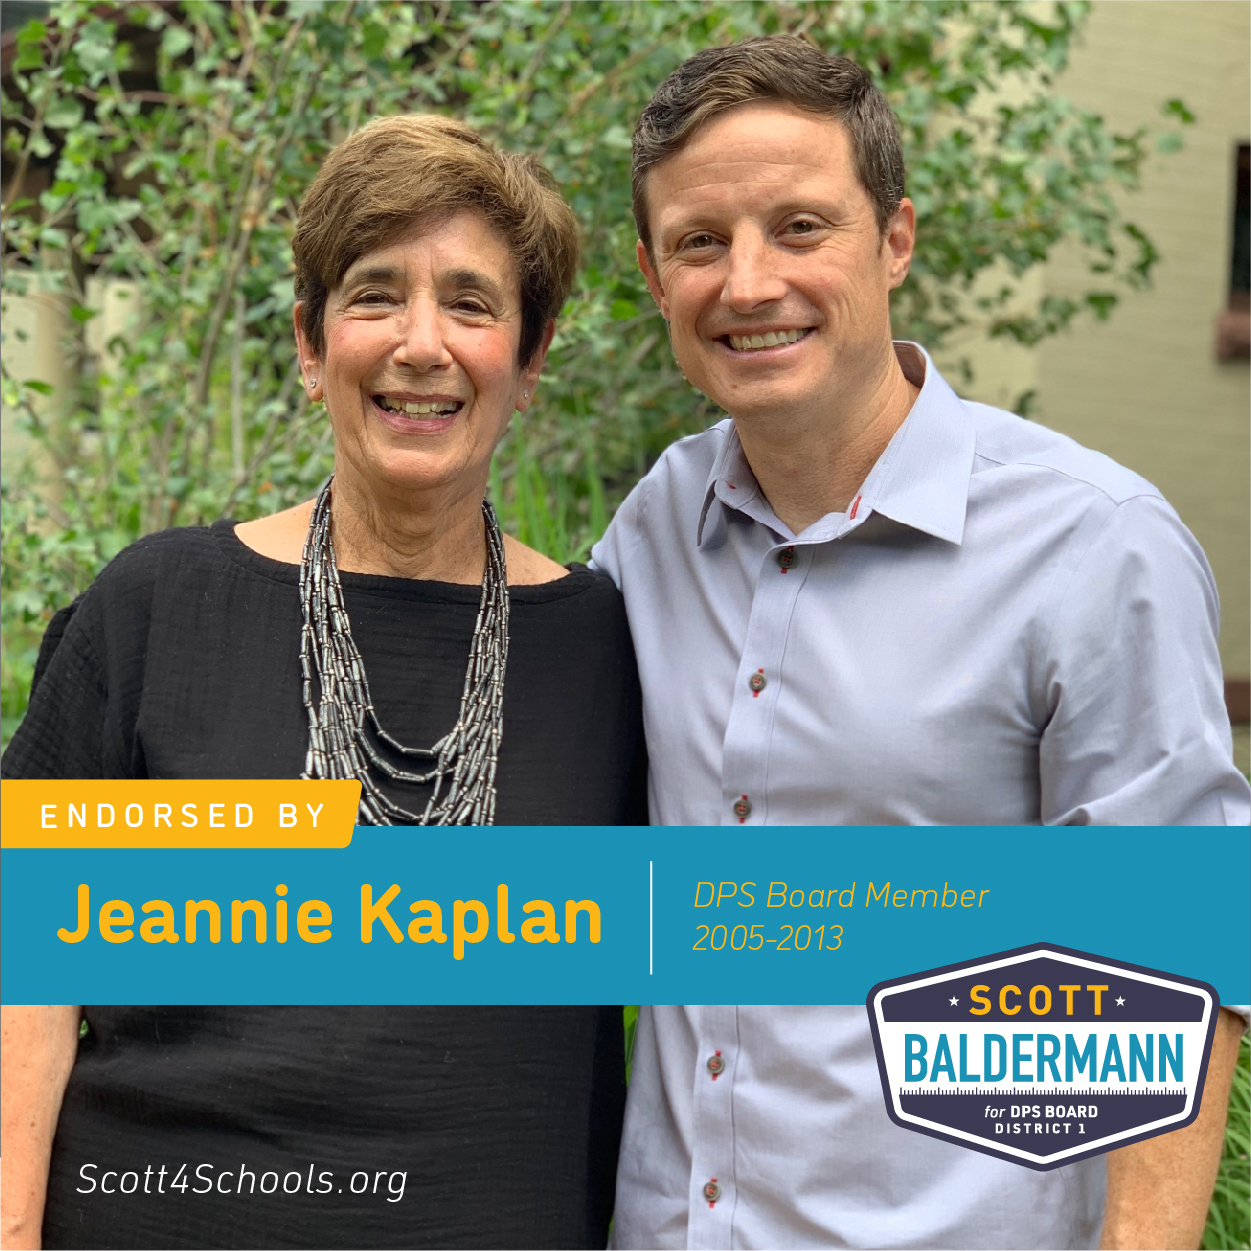 Jeannie Kaplan - Scott Baldermann is the right choice for District 1. Scott is a problem solver who has worked tirelessly for all students and all educators and will continue to do if elected. Scott believes the DPS budgetary process needs to be more transparent so taxpayers can be confident their money is being spent wisely. He will work to examine and reprioritize the budget so more money actually reaches the classrooms. He believes in empowering neighborhood schools by providing them with the proper financial and human resources, including wrap-around services and social and emotional supports for Denver's kids. He believes in reducing the time spent on excessive high stakes testing so professional educators can teach and students can learn again.Scott Baldermann. The best candidate for Denver's District 1.